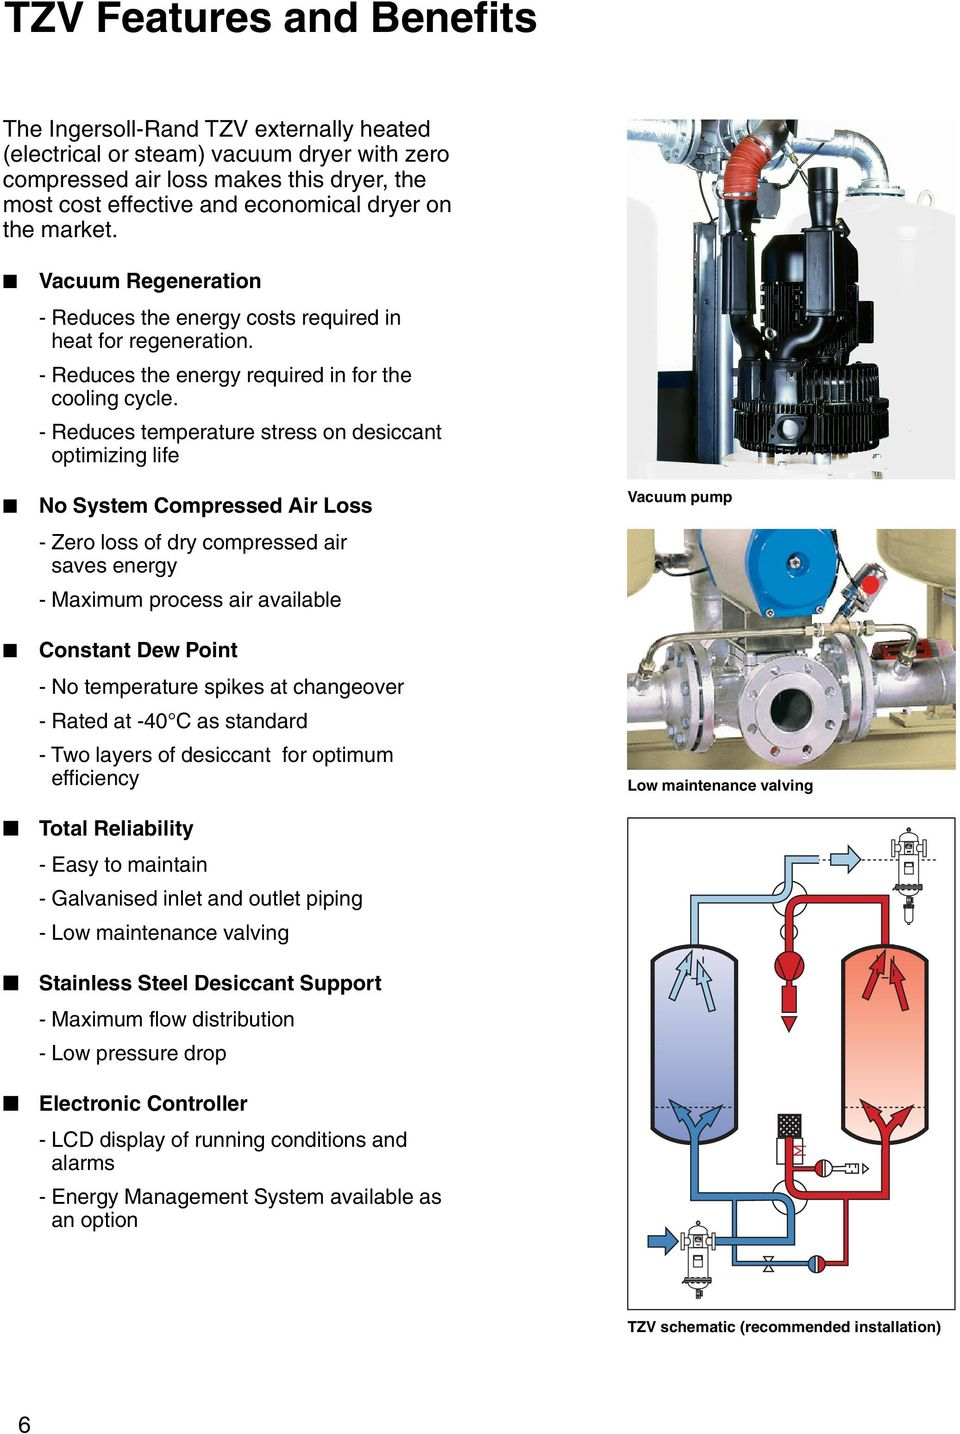 Thermosorb Desiccant Dryers Pdf Schematic Diagram Was Created For Installing The Vacuum Pump Reduces Temperature Stress On Optimizing Life No System Compressed Air Loss Zero